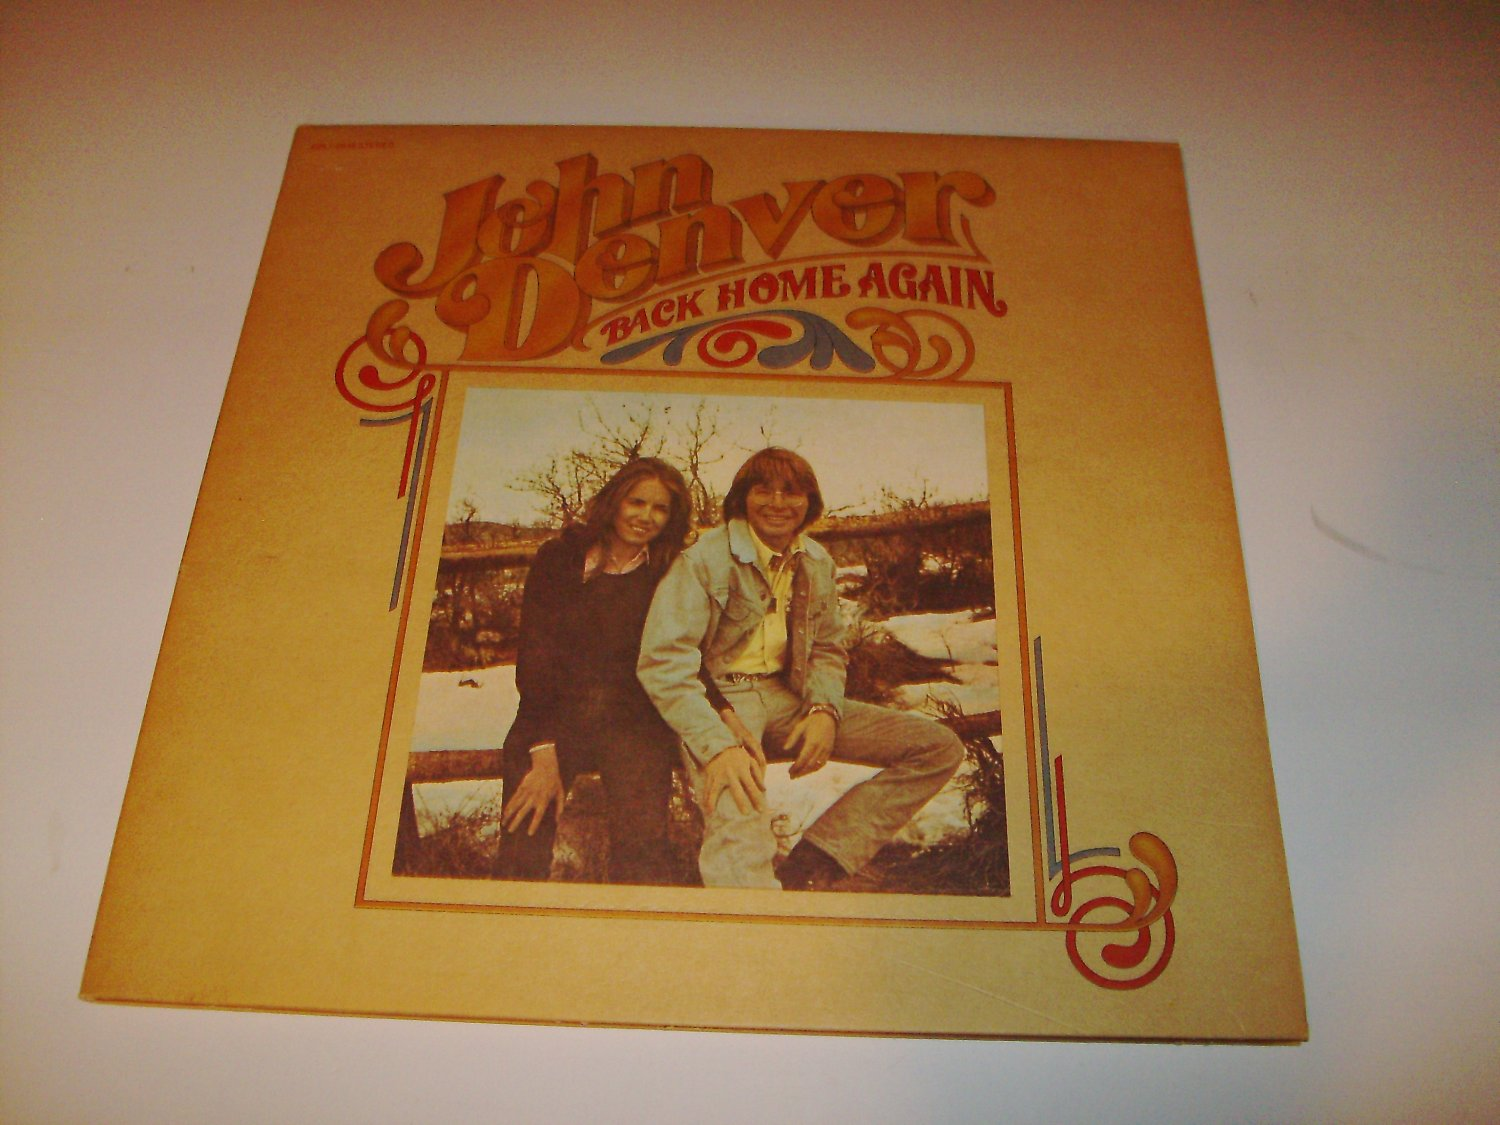 John Denver - Back Home Again (CPL1-0548) on 33 rpm Vinyl LP